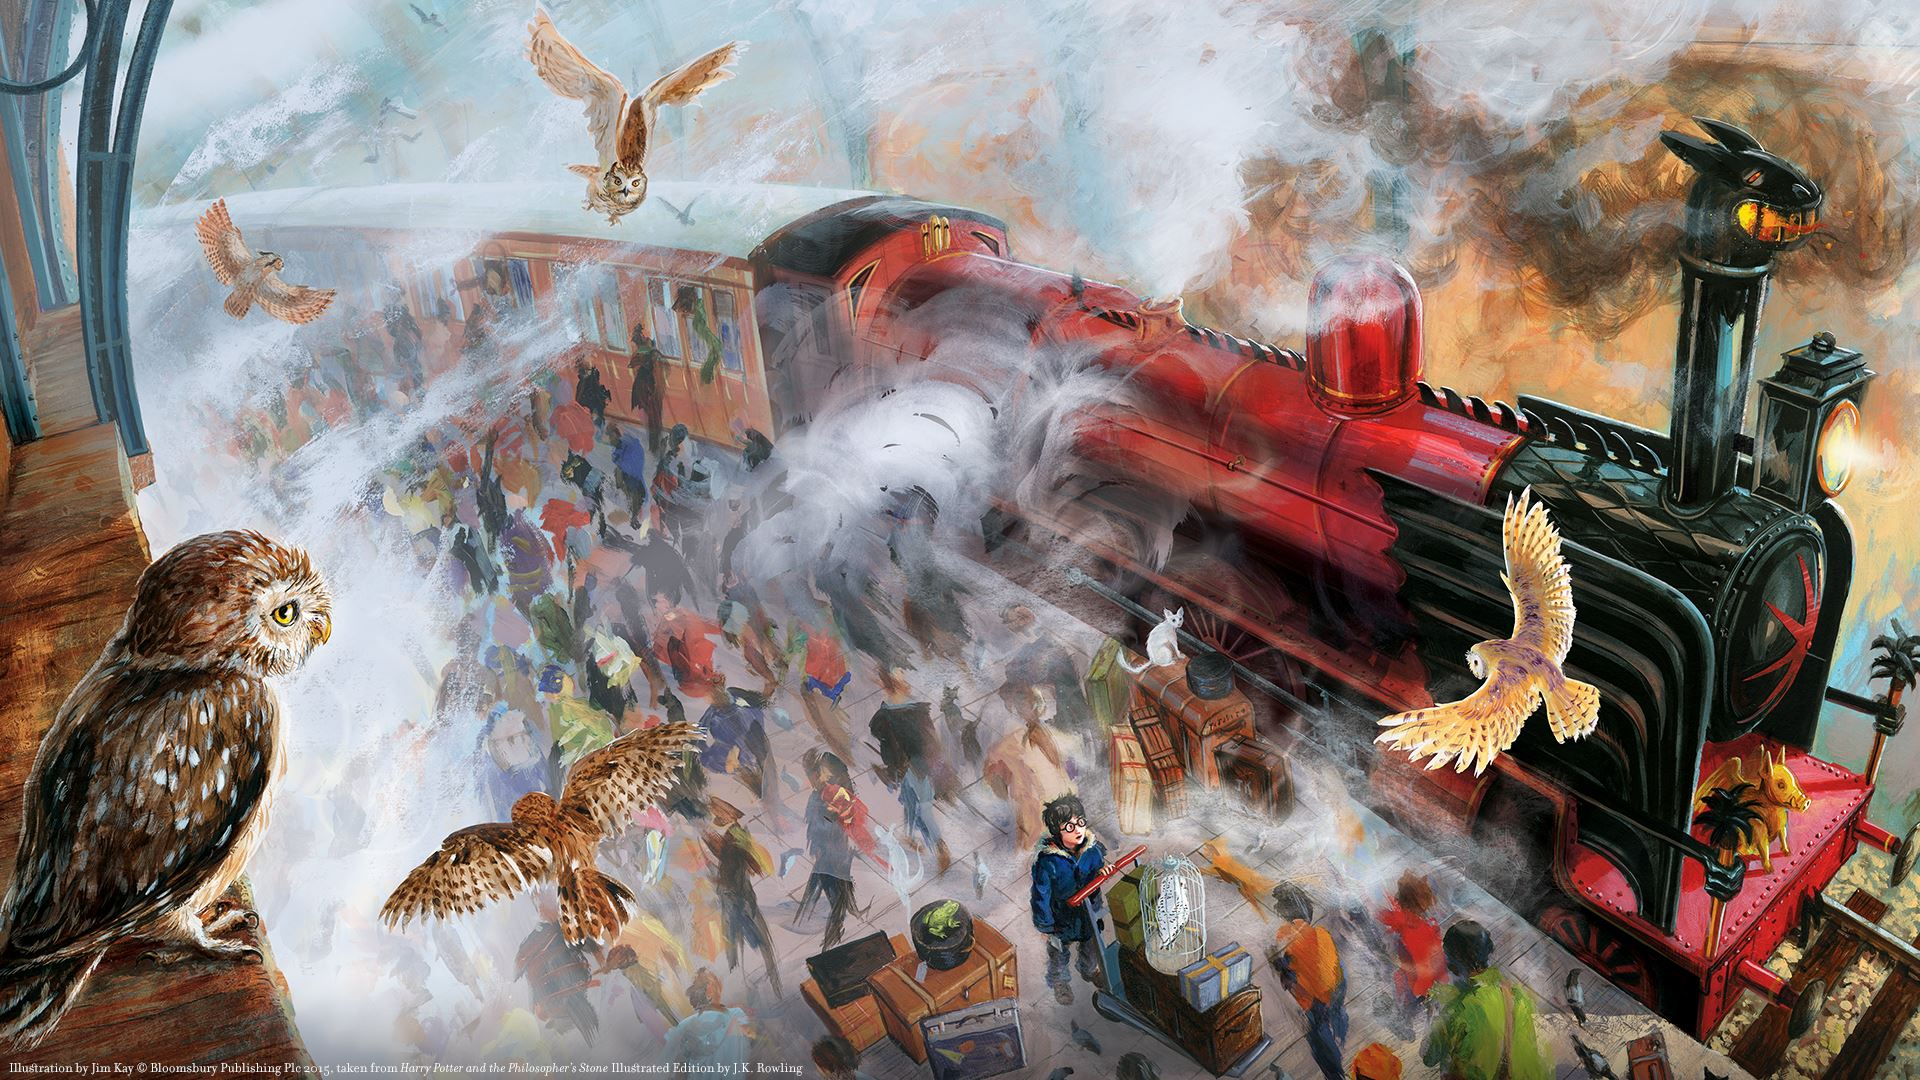 All-aboard-the-train-to-Godric-s-Hollow-this-October-Goderich-to-Godric-s-Hollow-Harry-Potter-wallpaper-wp3402258